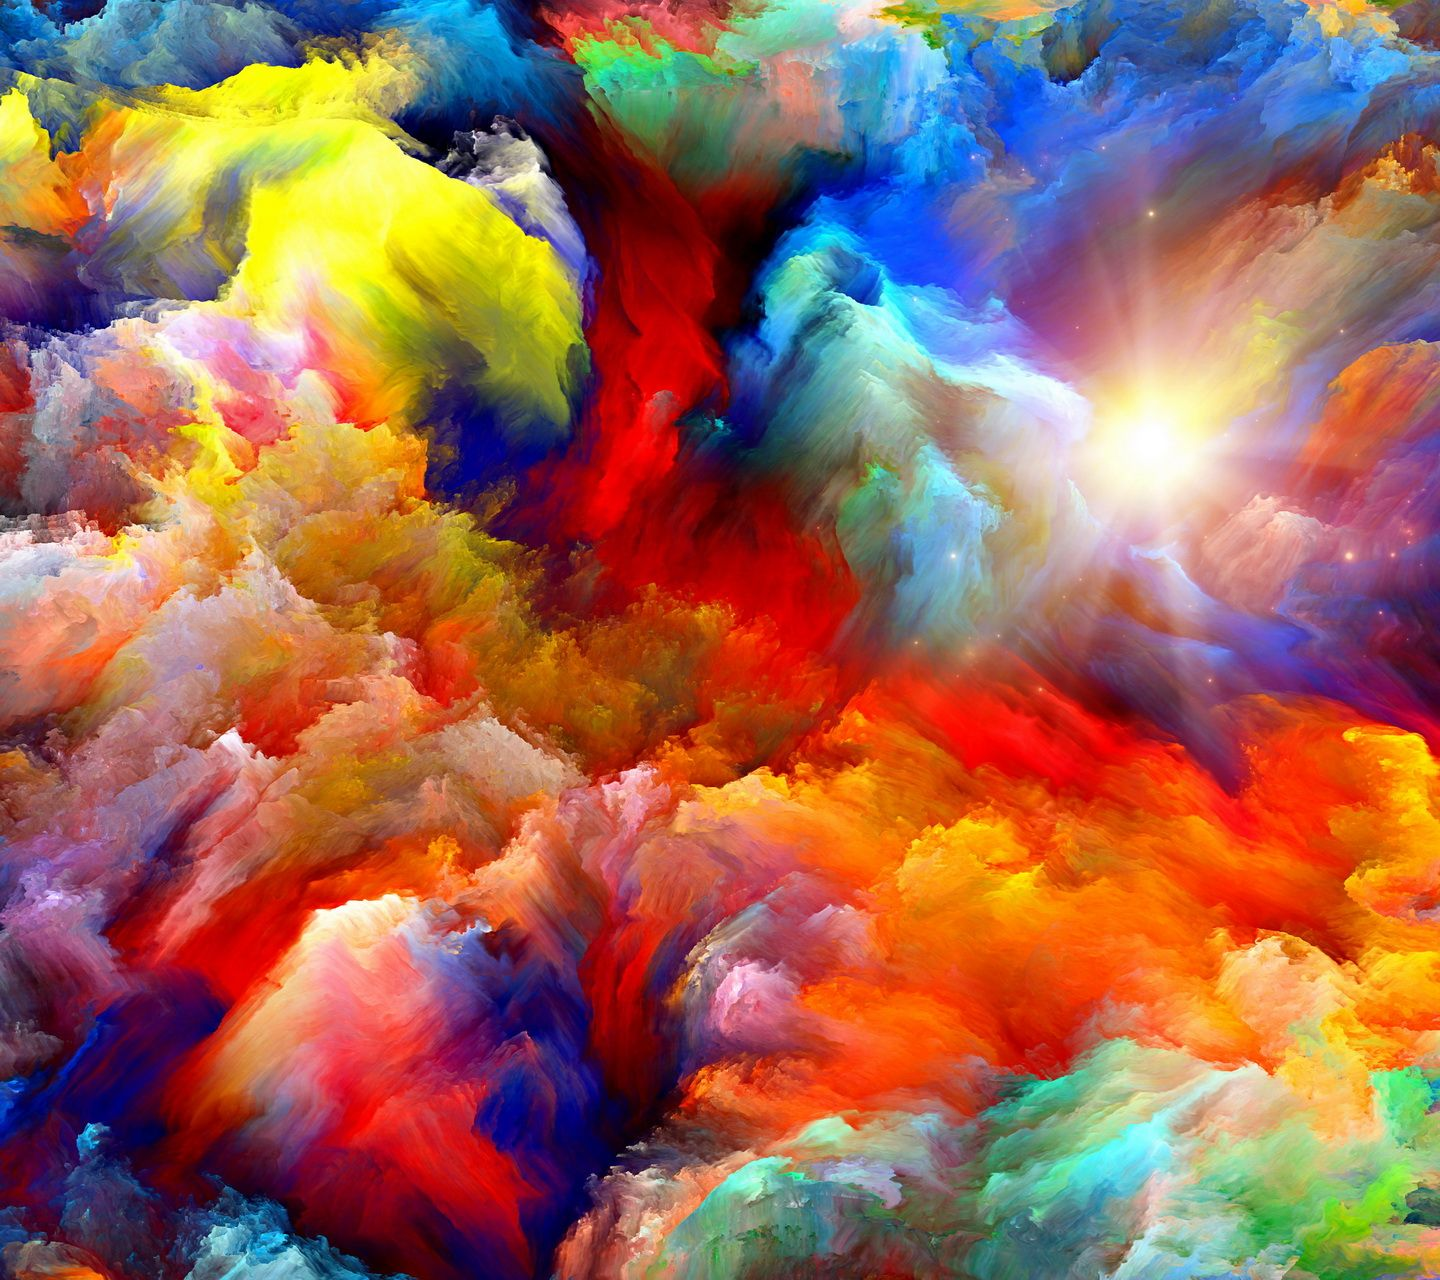 Rainbow Art, Colorful Abstract Art